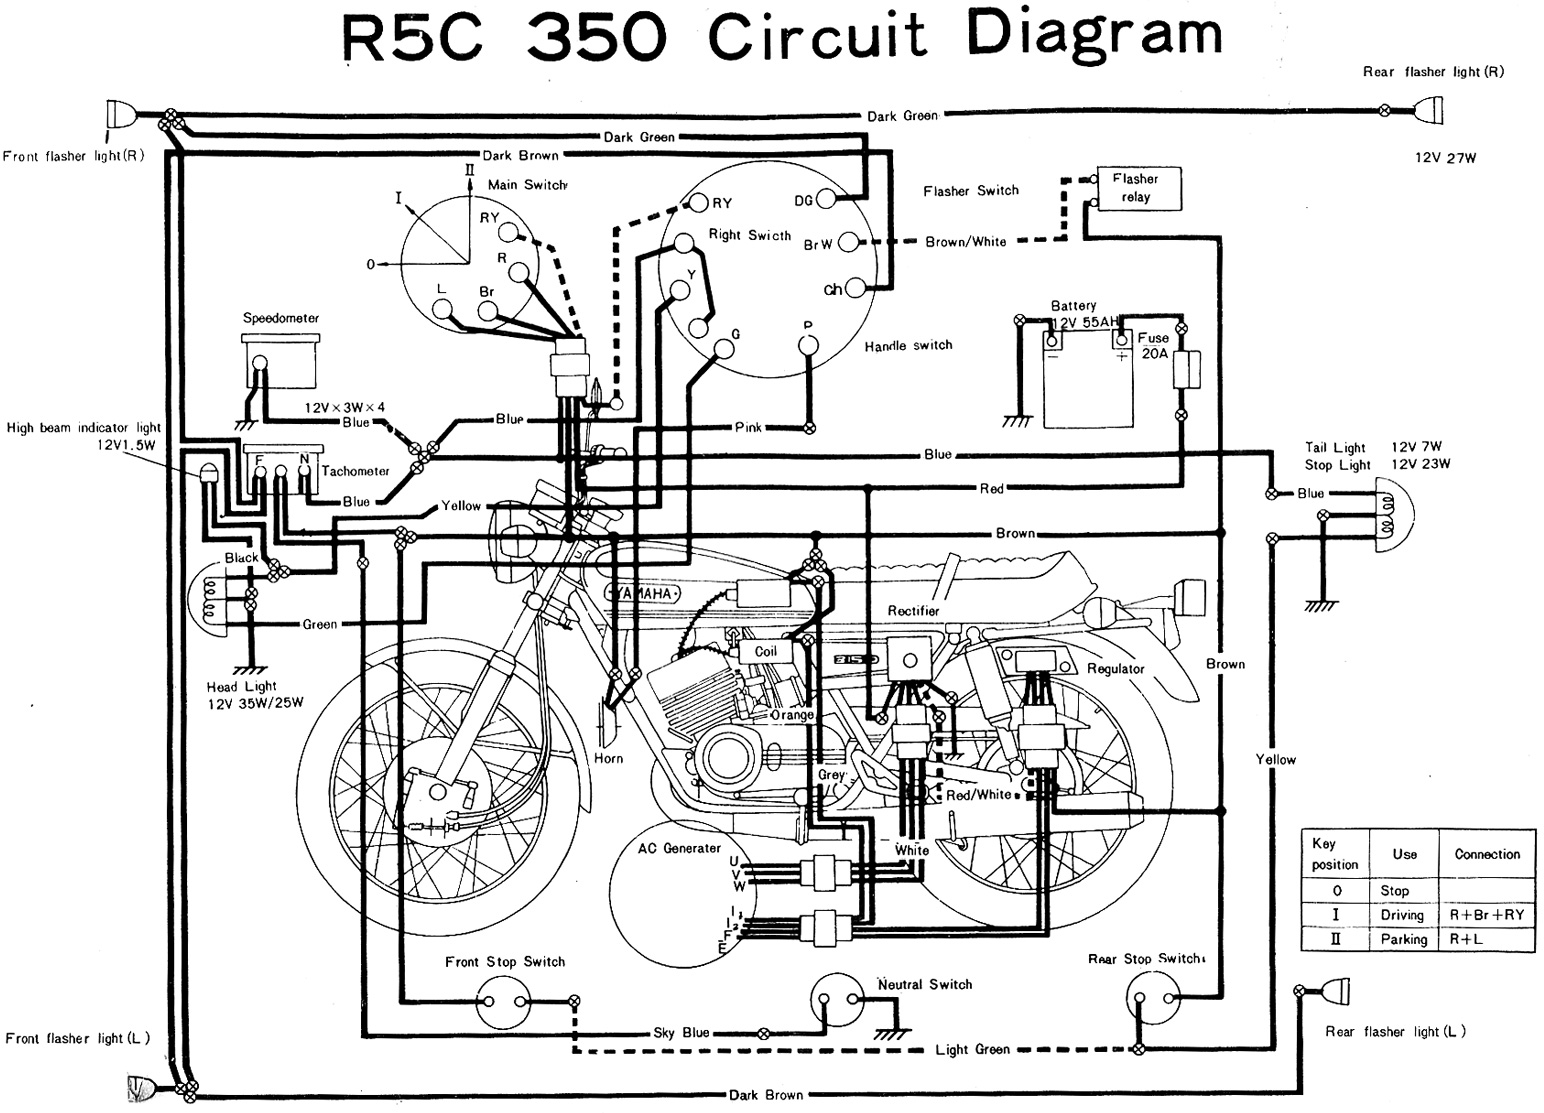 Yamaha RD350 R5C Wiring Diagram motorcycle wiring diagrams evan fell motorcycle worksevan fell Basic Motorcycle Diagram at nearapp.co